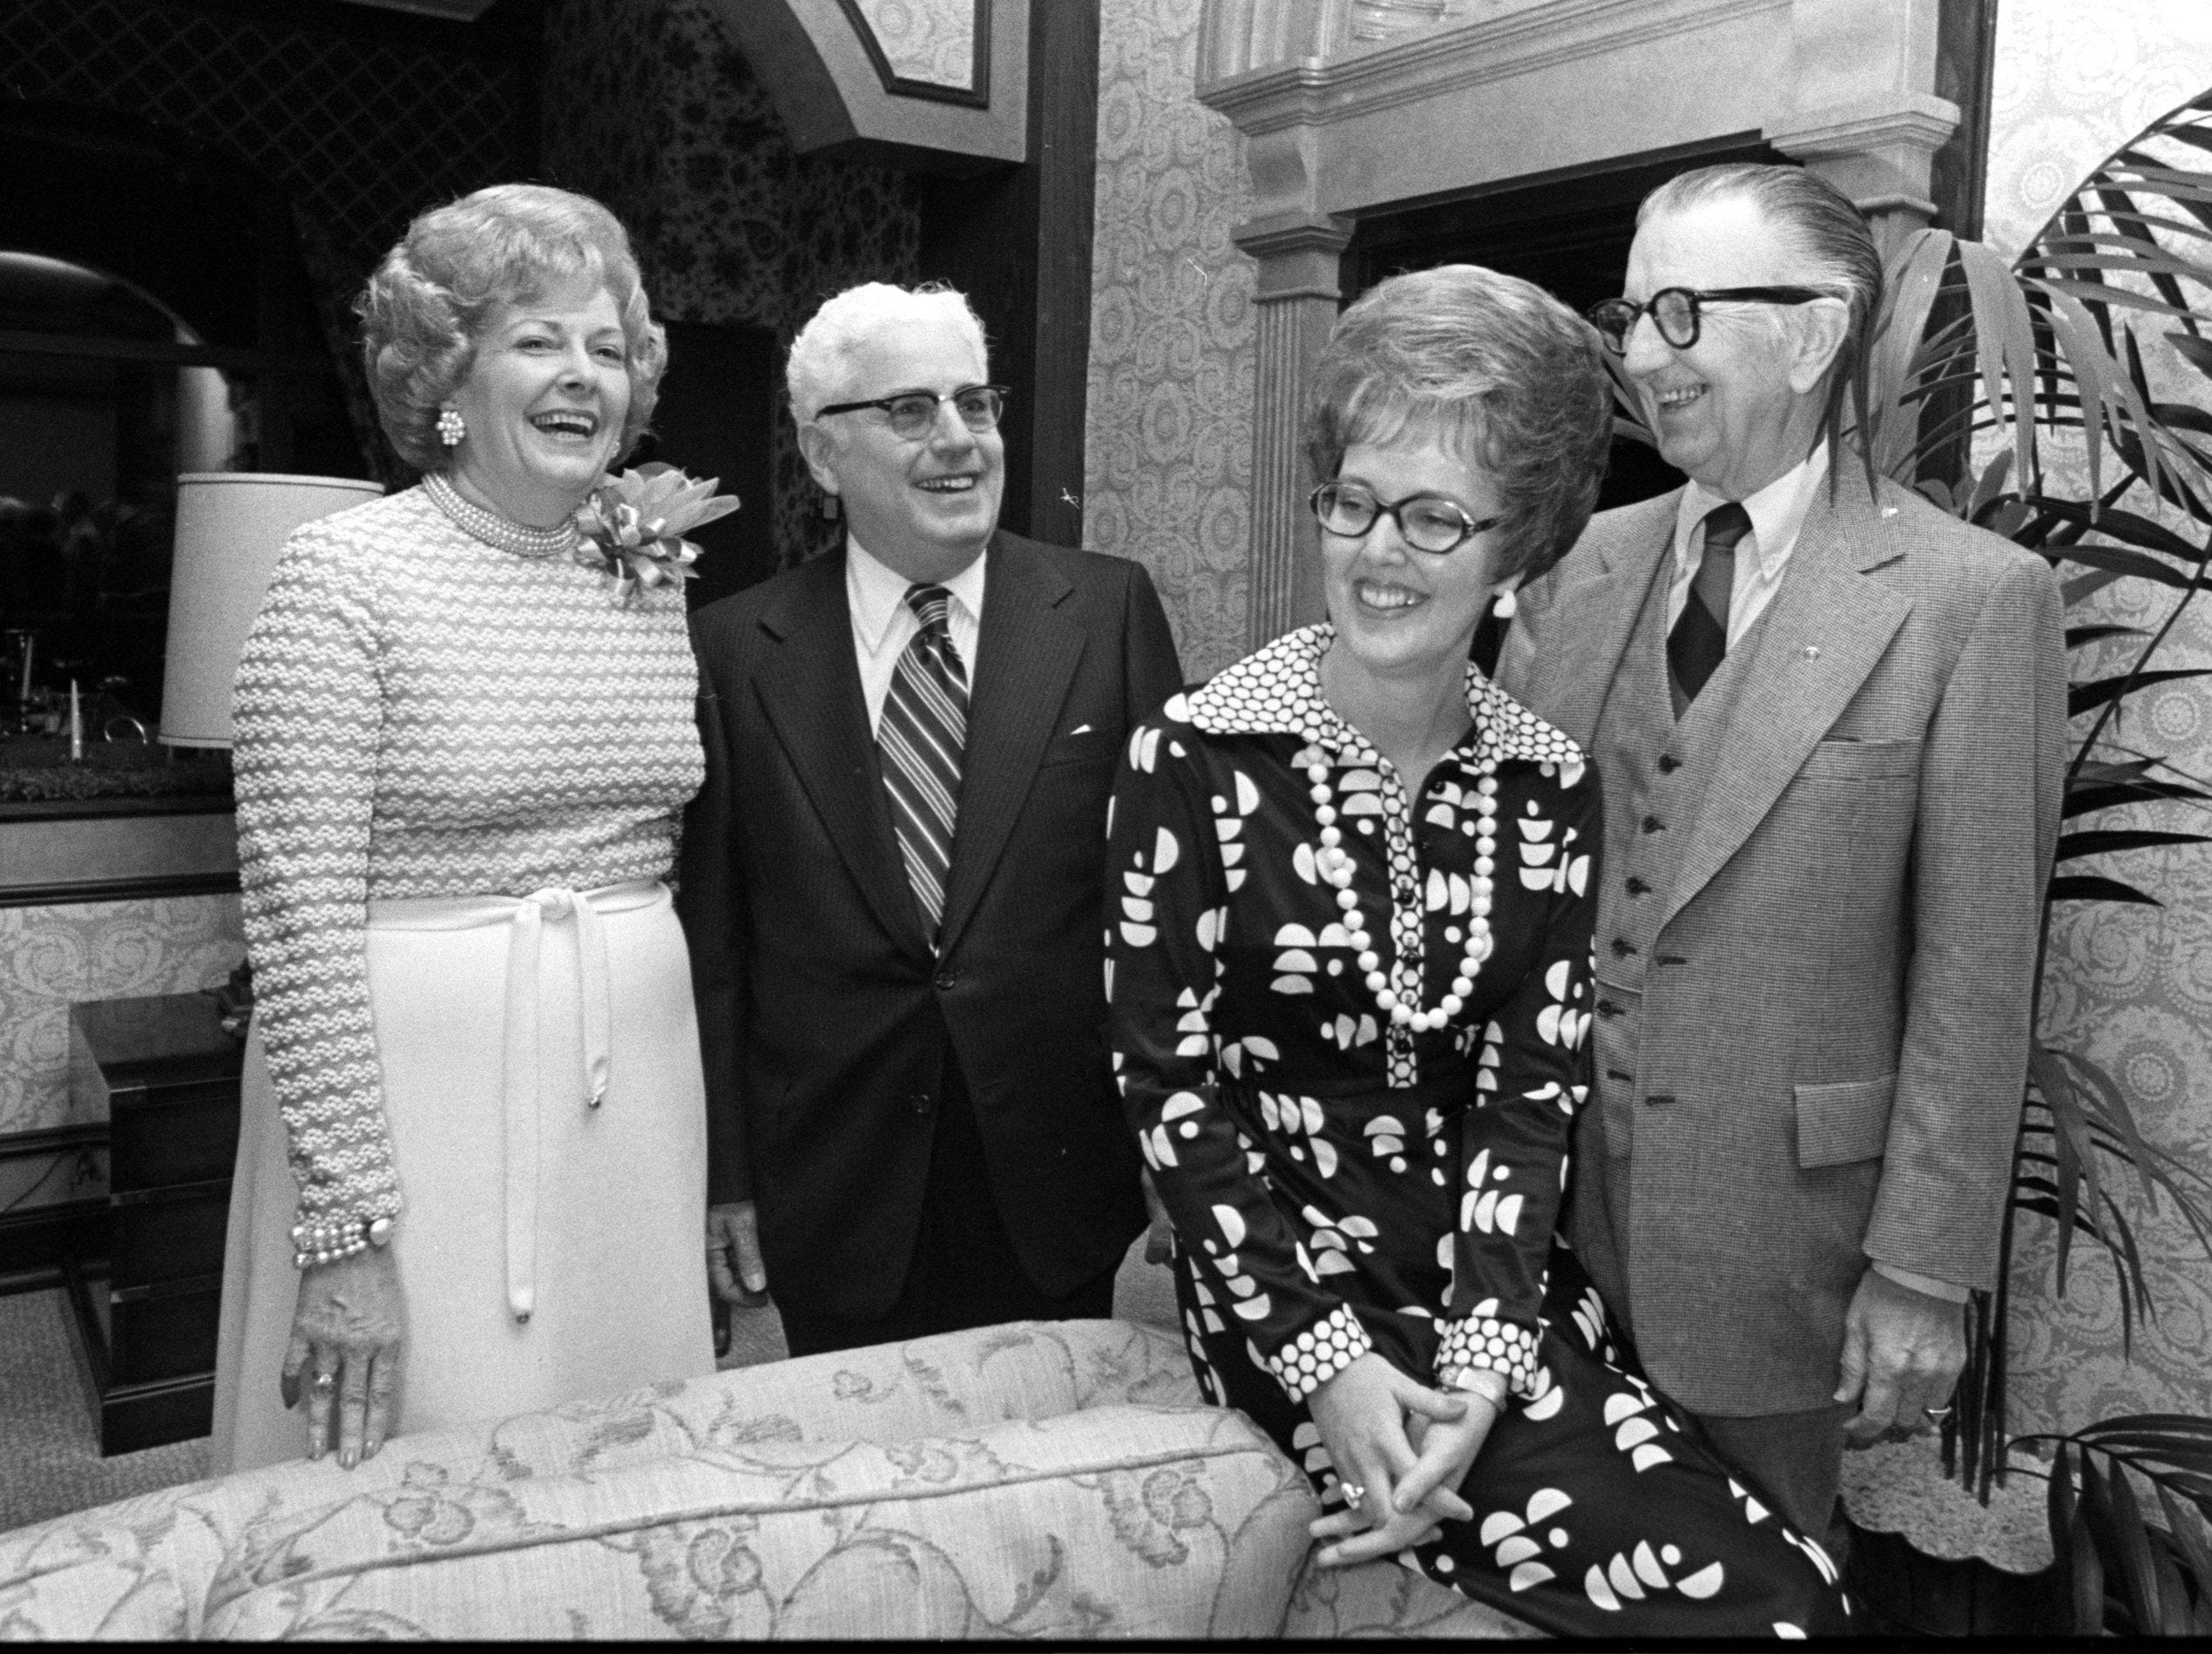 Bosses were special guests when the Executive Secretaries, Inc. had an installation dinner at Chickasaw Country Club on 16 Jan 1975. In the gathering were (From Left) Mrs. Juanita Barnes, new president, and her employer, Thomas Clark, and Mrs. James L. McNeer and her boss, E.A. 'Bob' Alburty.